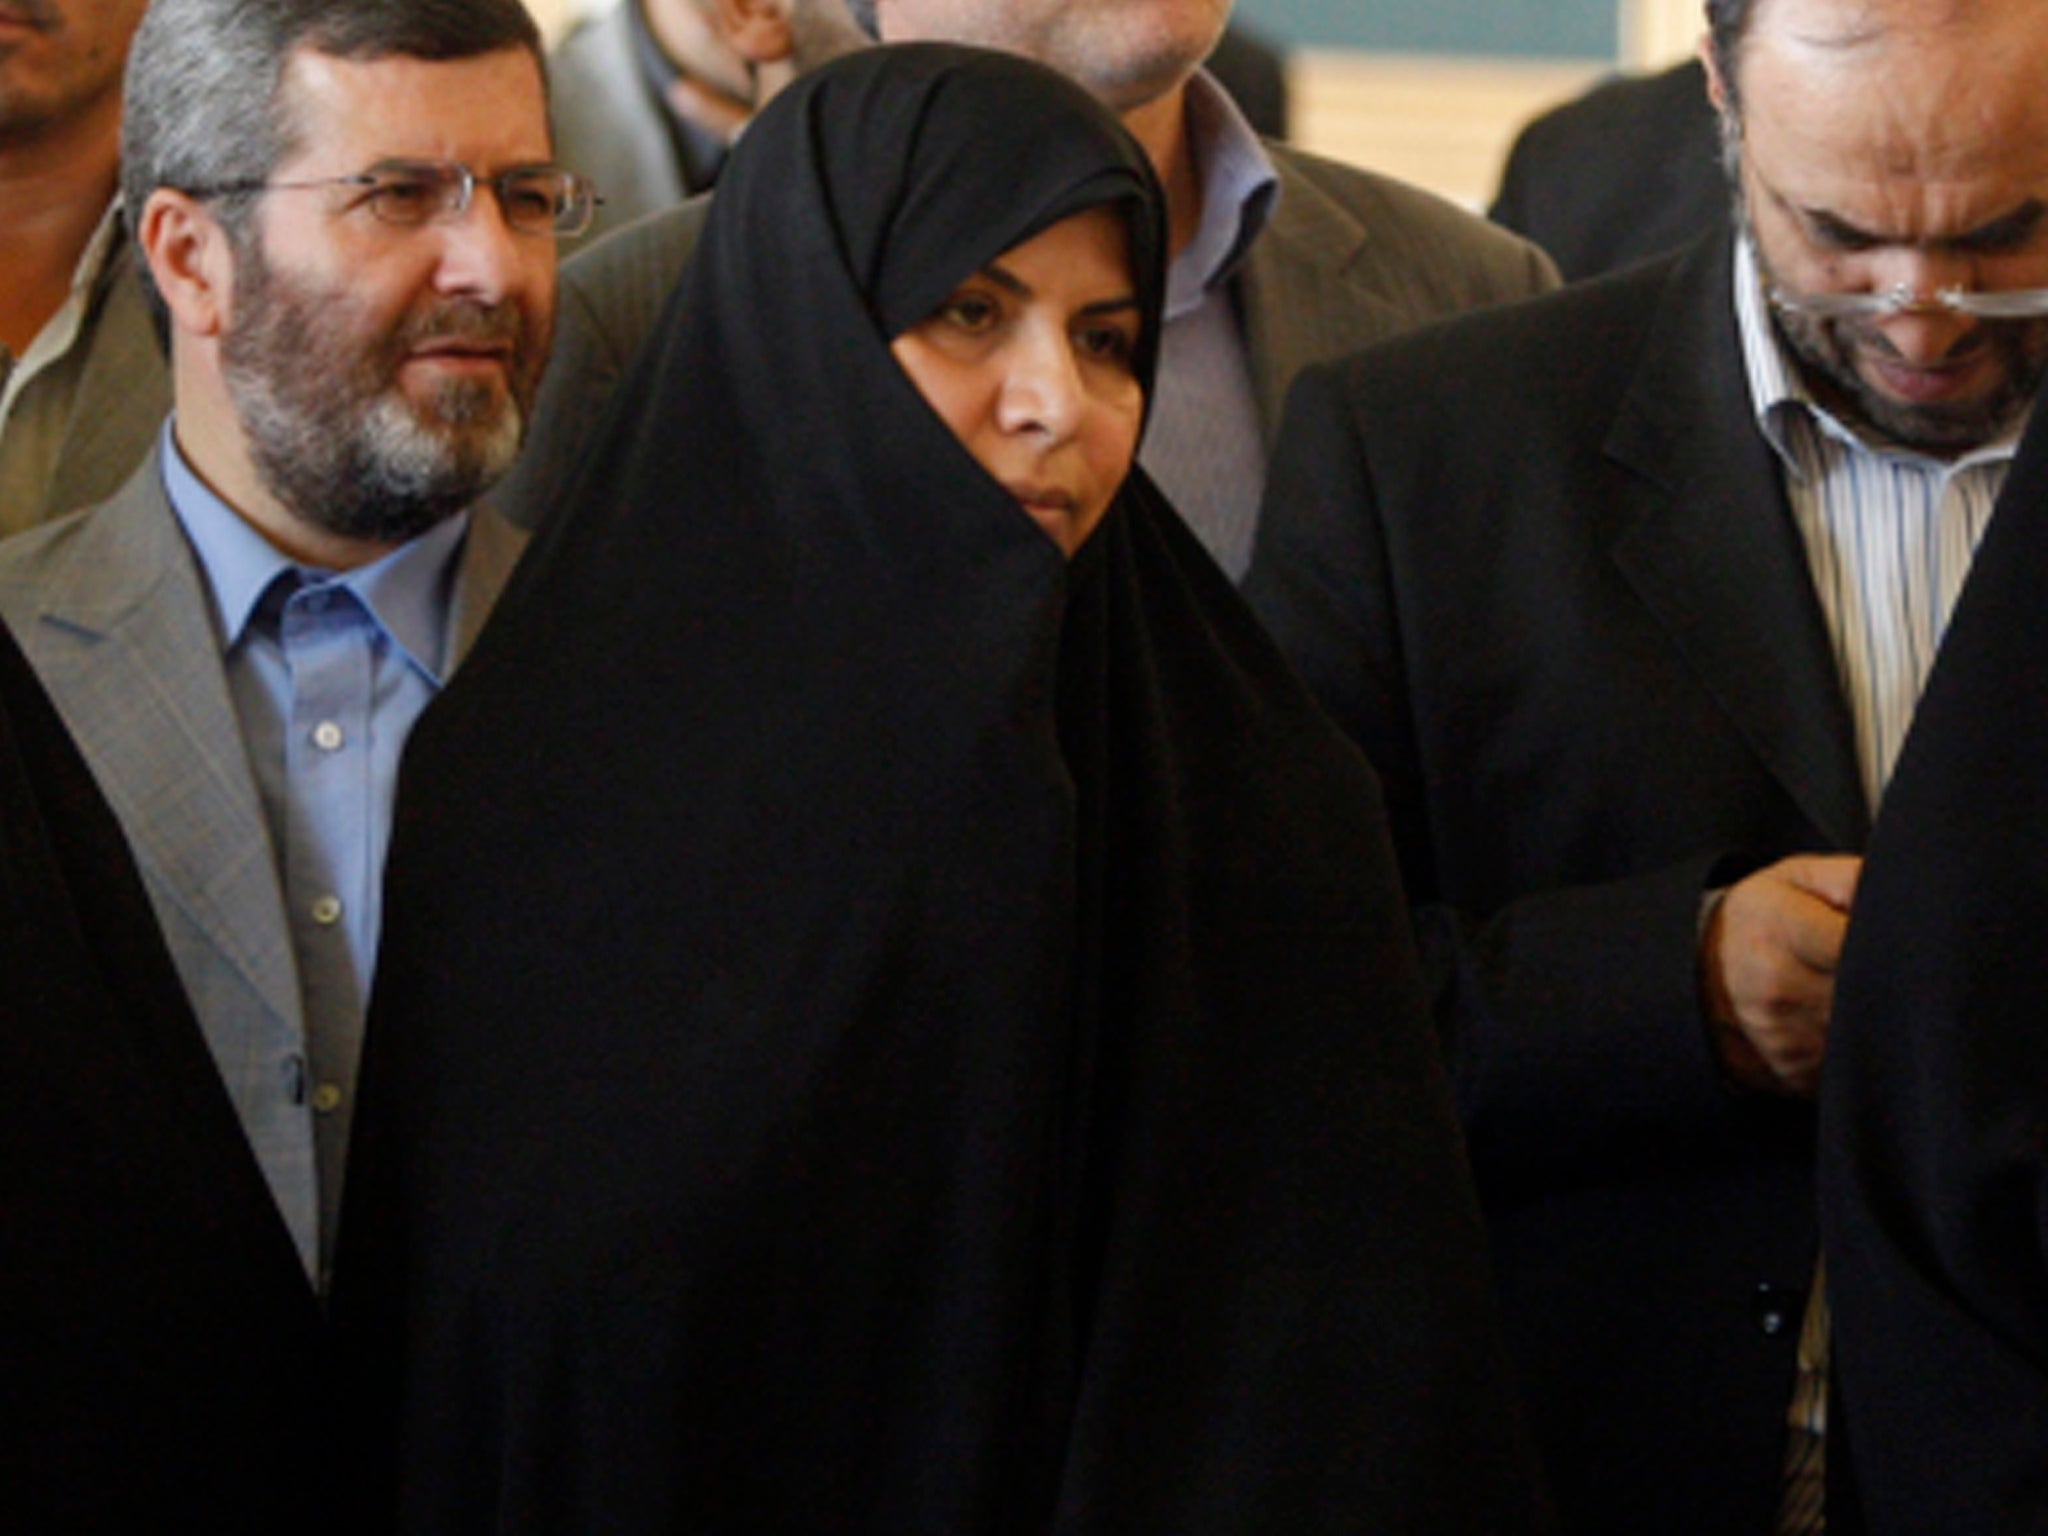 Ahmadinejad dismisses Iran's only female minister for criticizing policy -  Haaretz Com - Haaretz.com